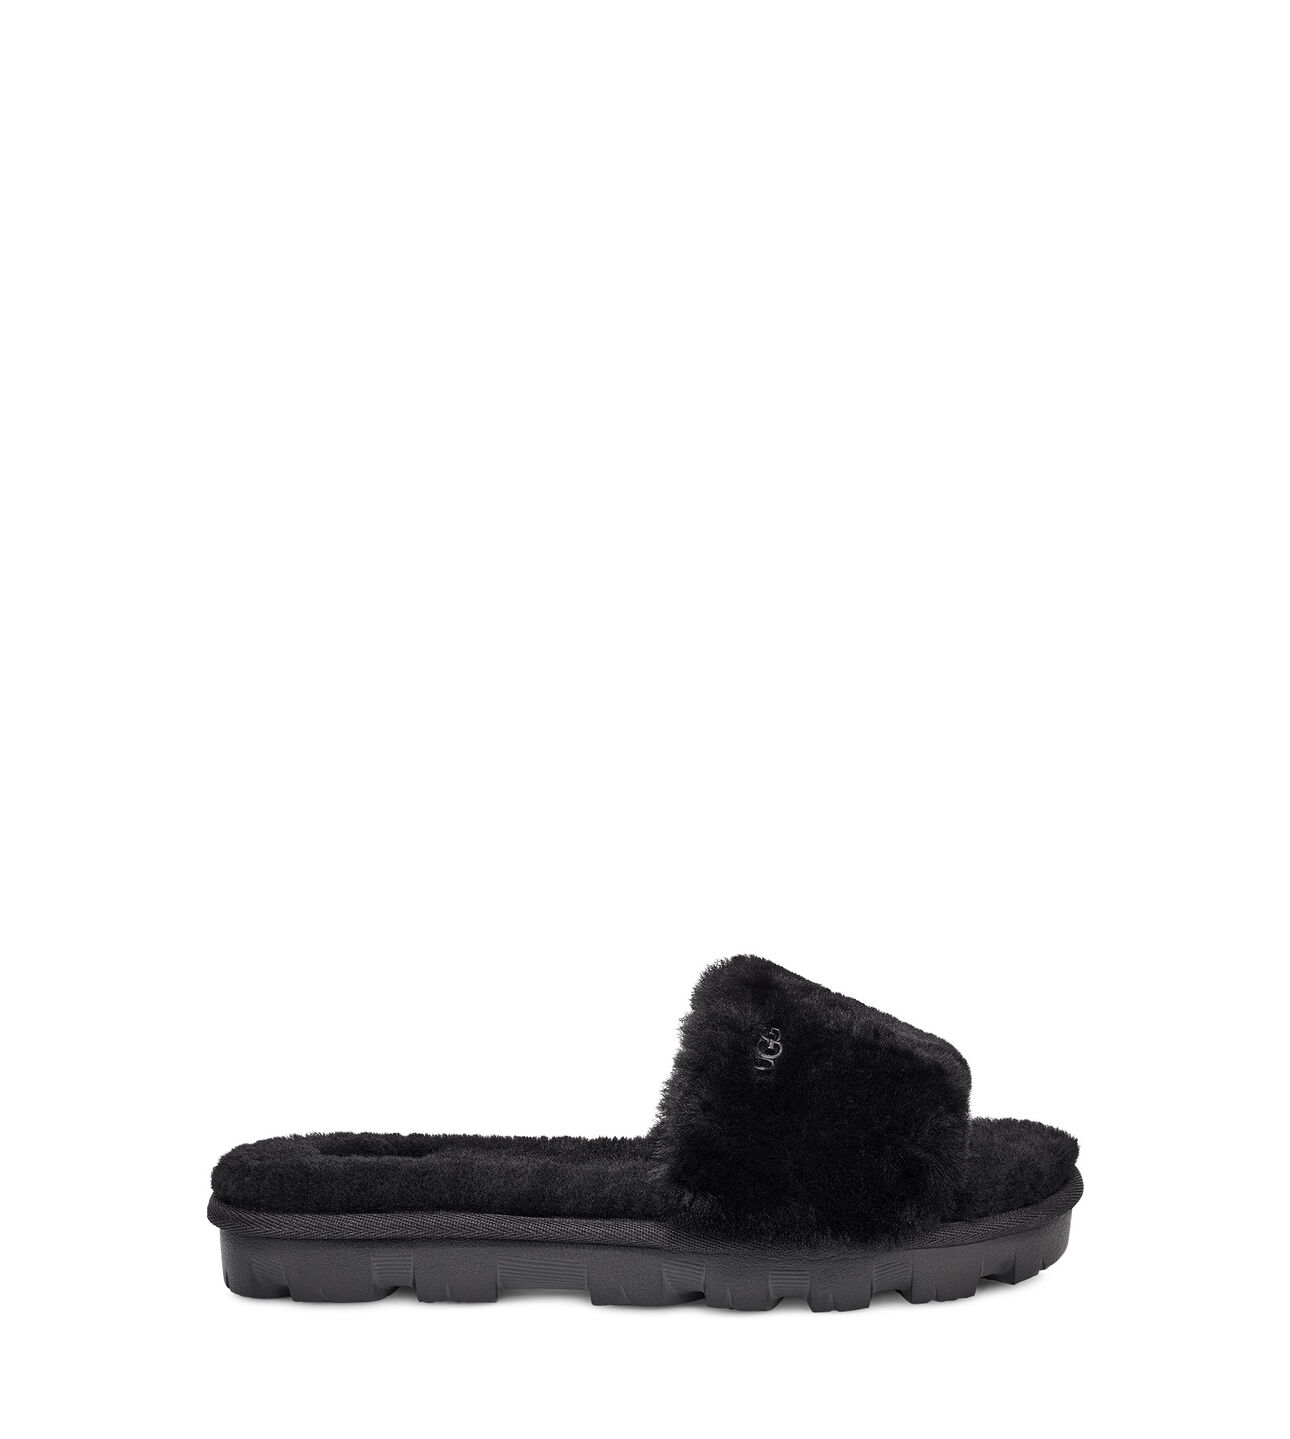 151b4a6df21c Women s. Share this product. Cozette Slide. UGG